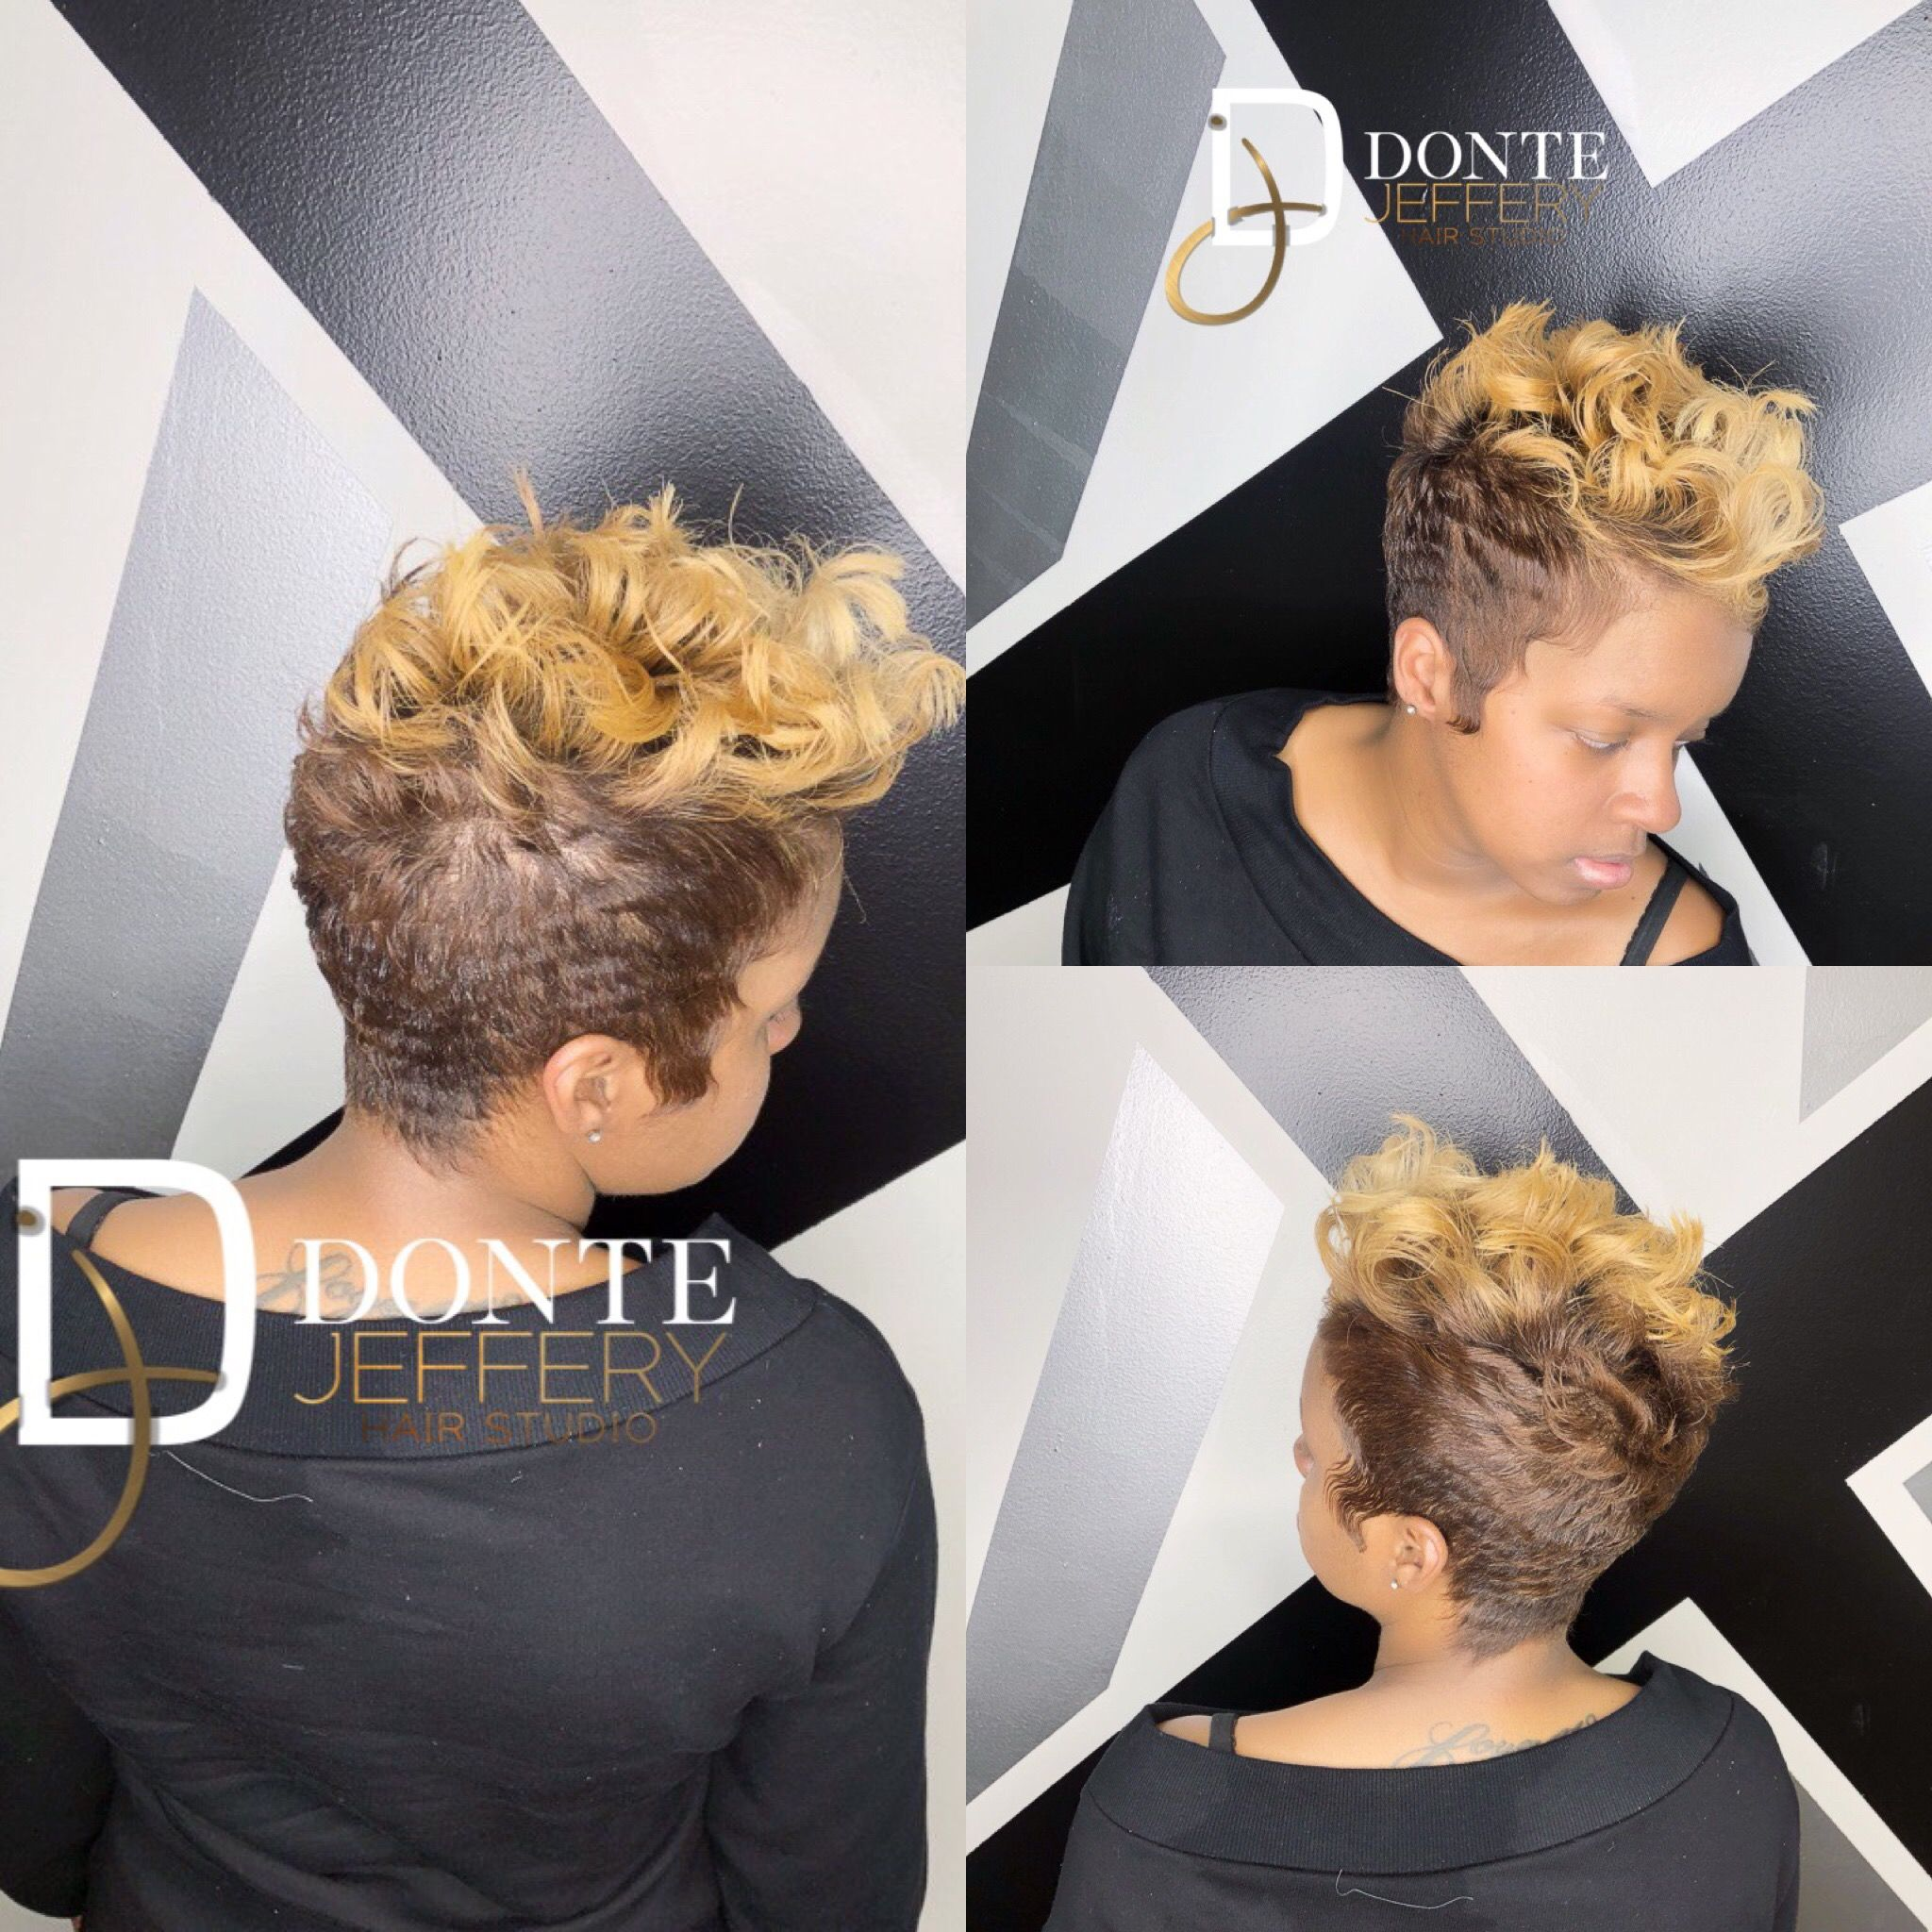 😍detroit are you looking for a new look experience donte